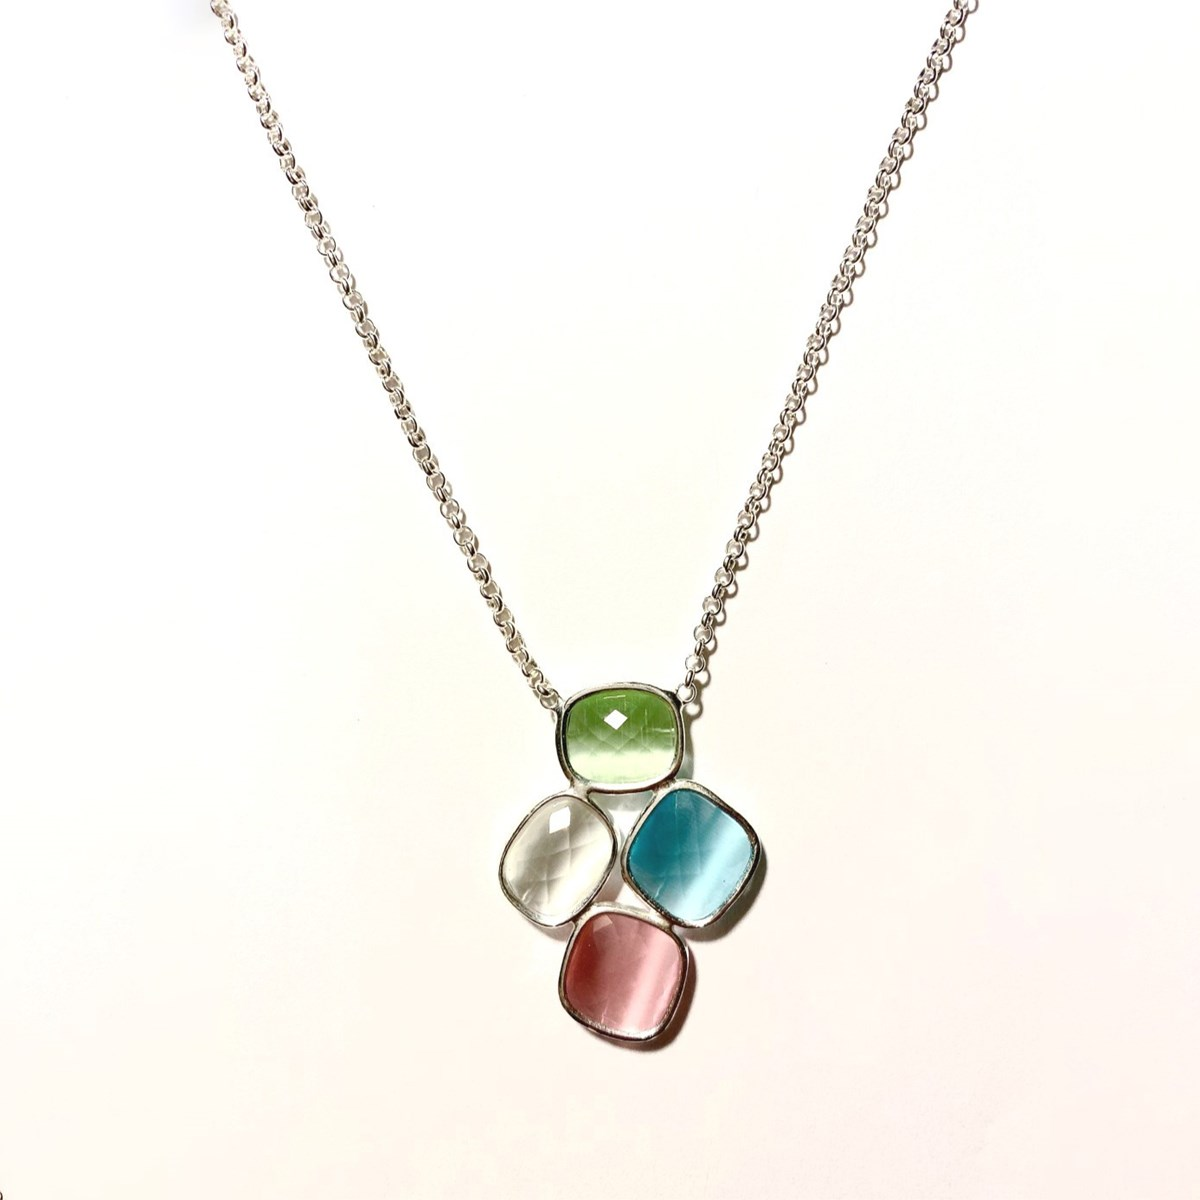 Collier Arg.925 pierre oeil de chat  multicolore pastel